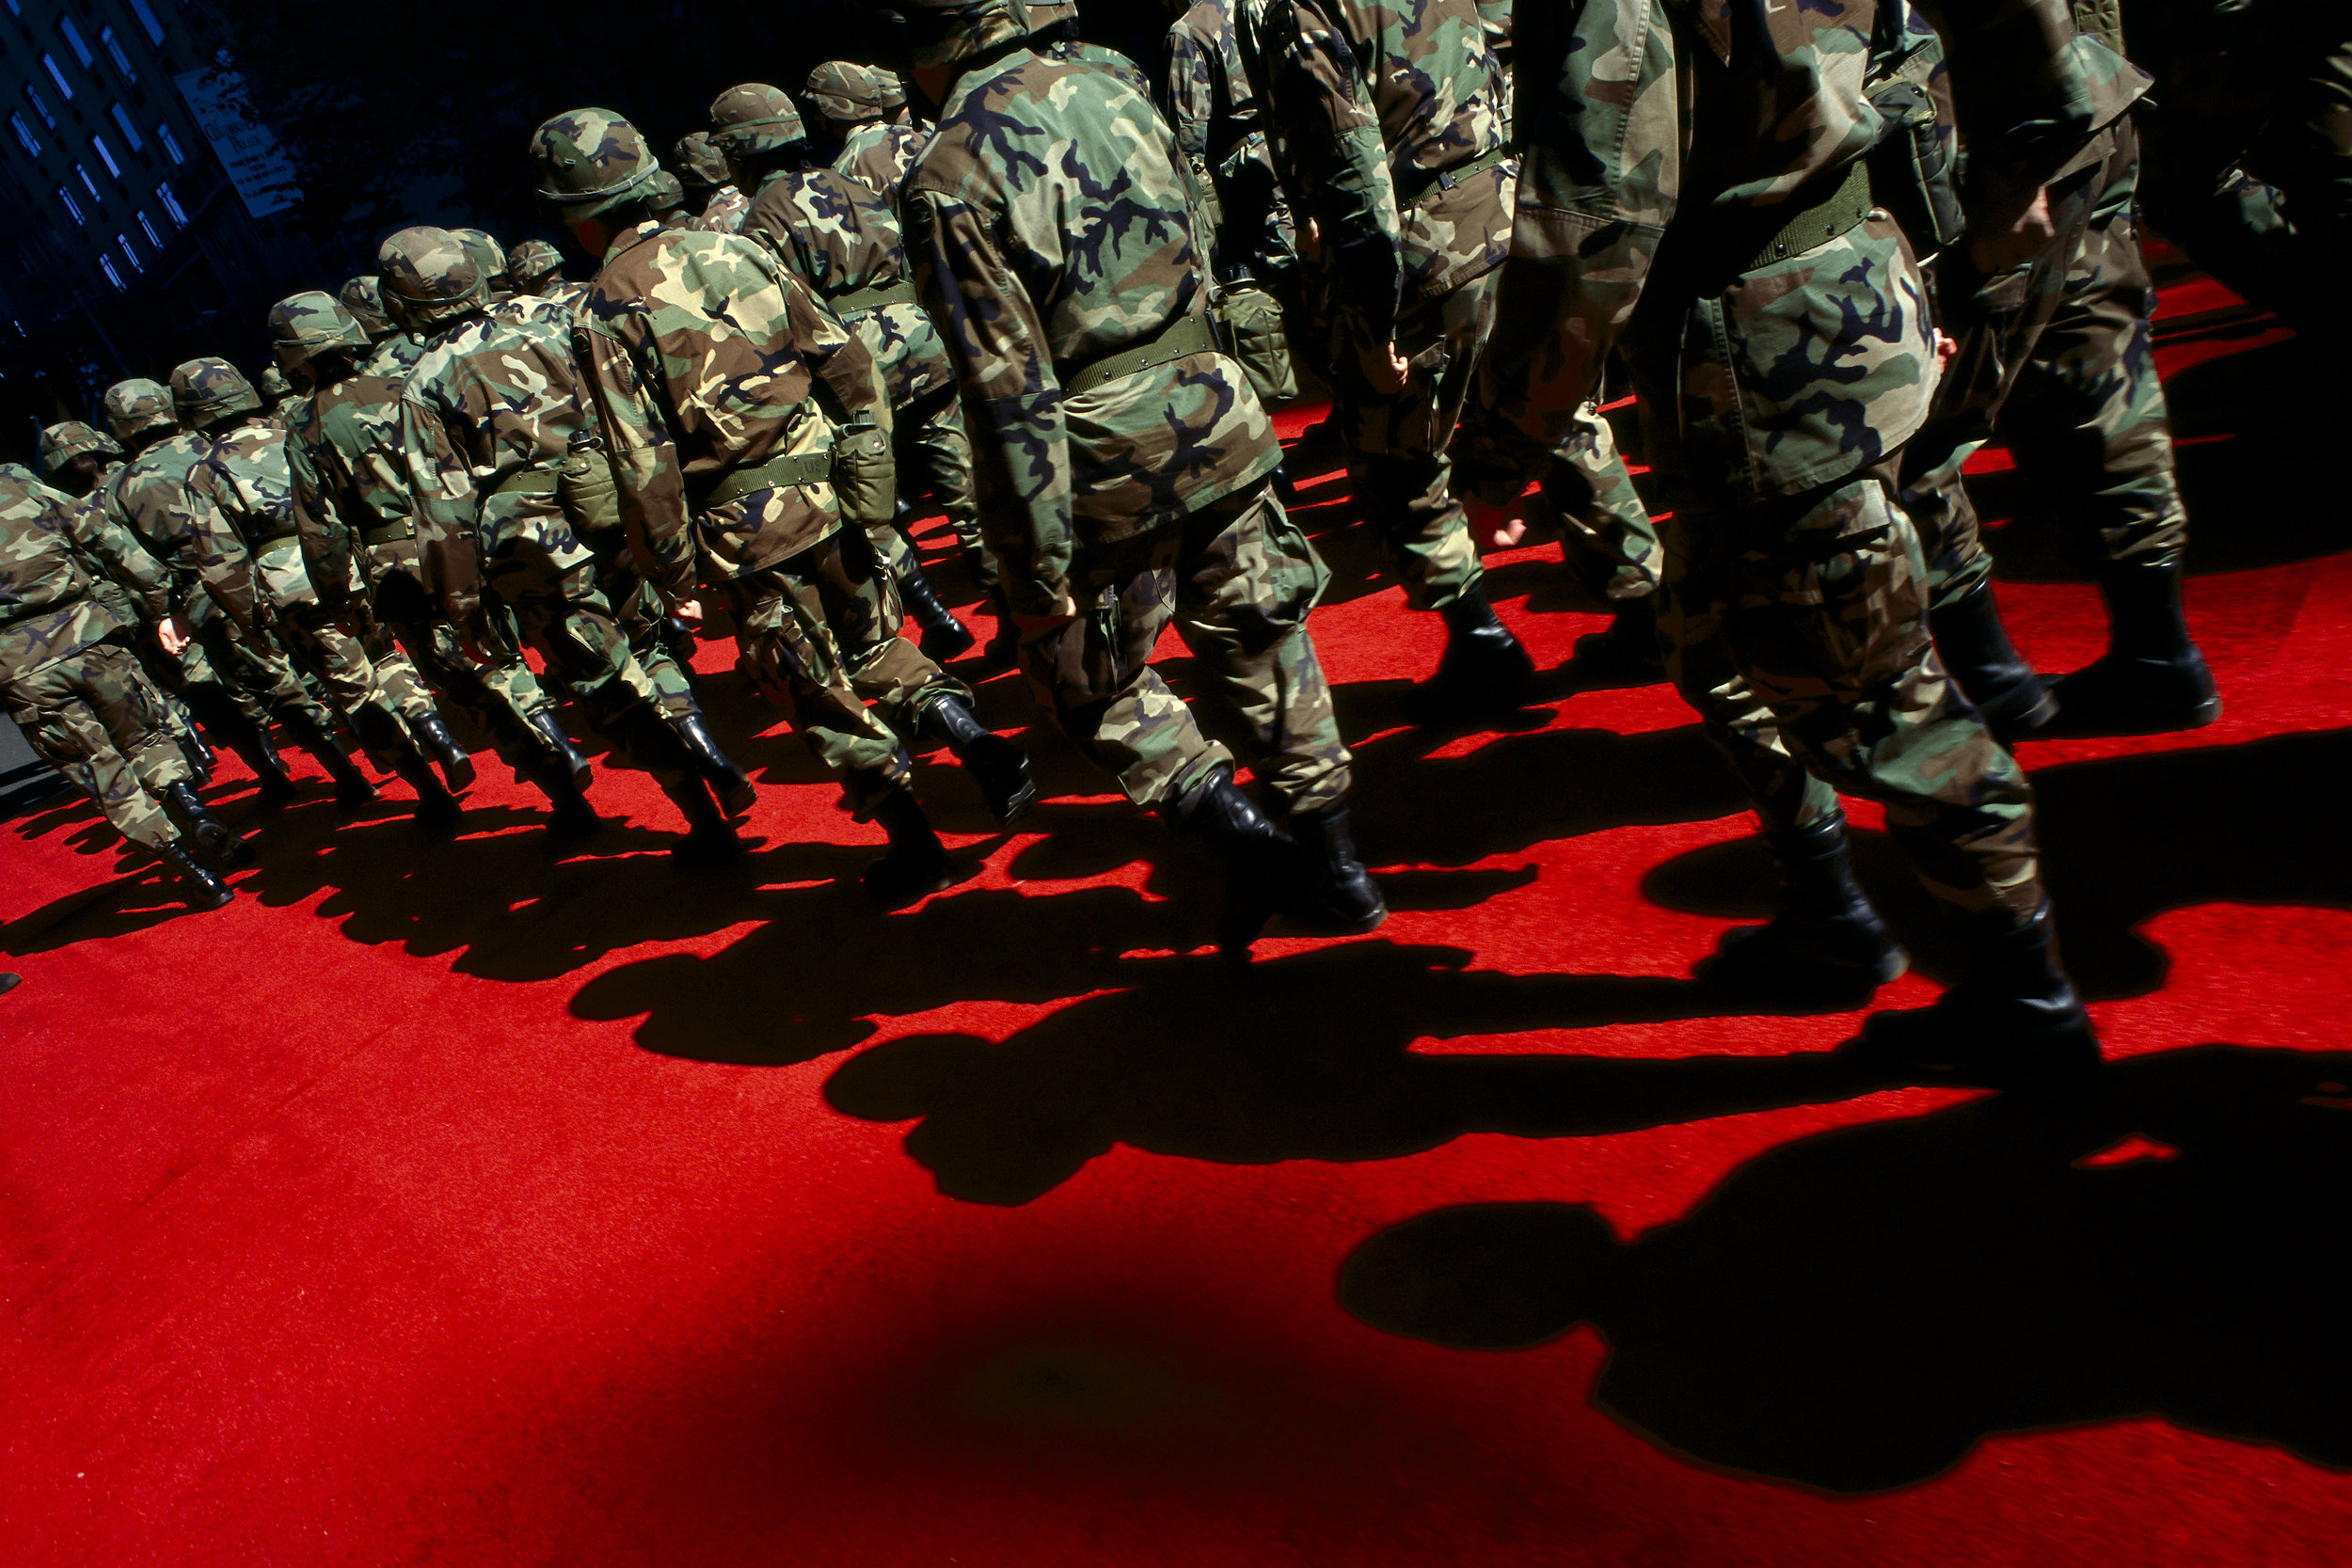 Soldiers march on a red carpet in a New York City Christopher Columbus parade, during the first days of the invasion of Afghanistan. New York 2001